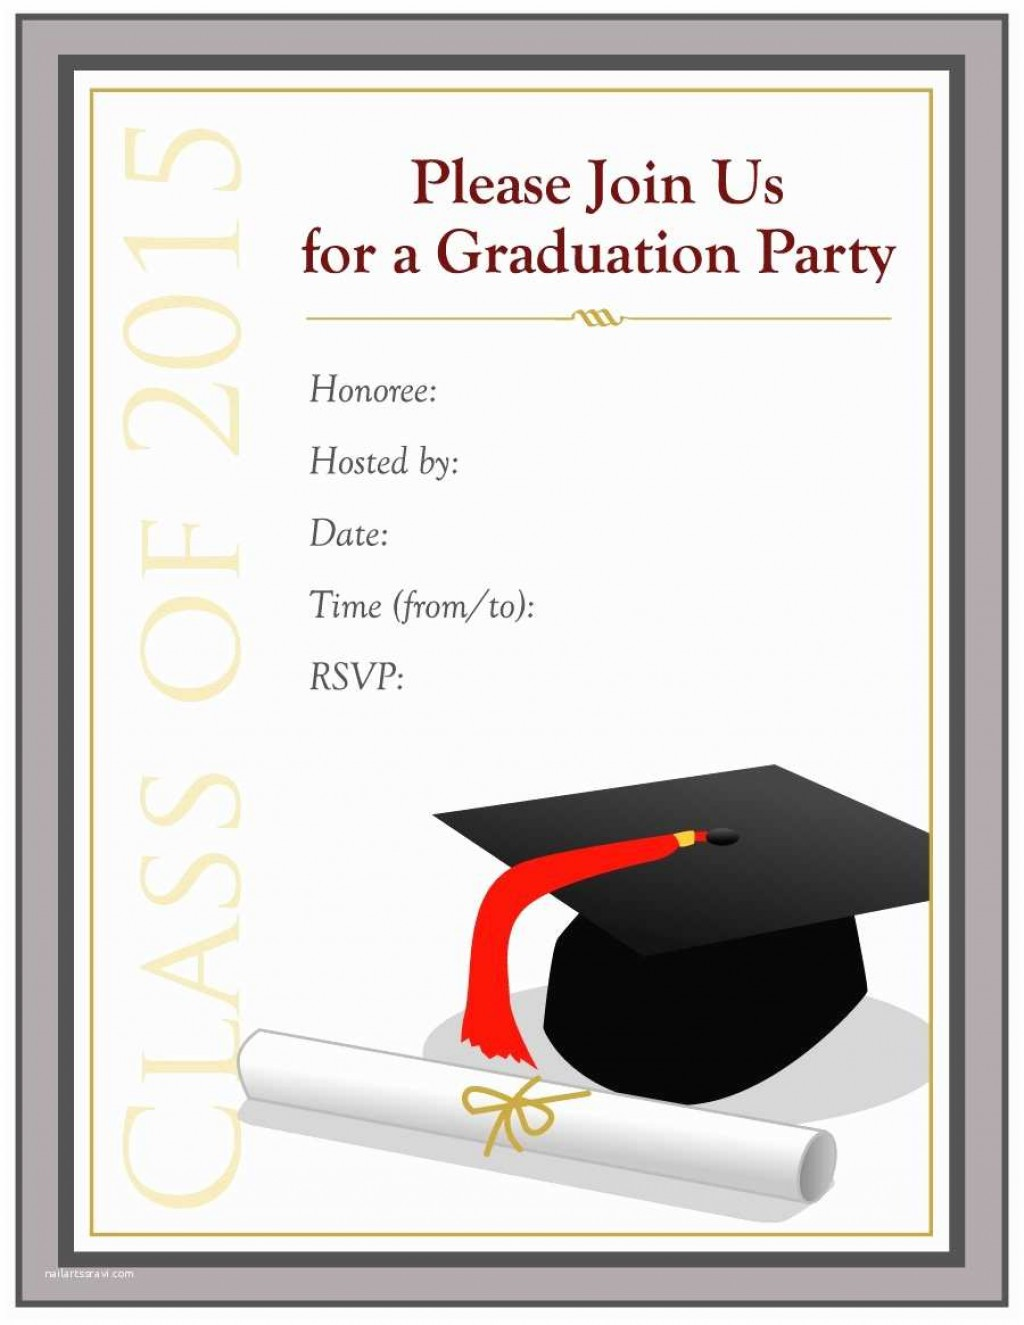 006 Awful College Graduation Invitation Template Sample  Party Free For WordLarge